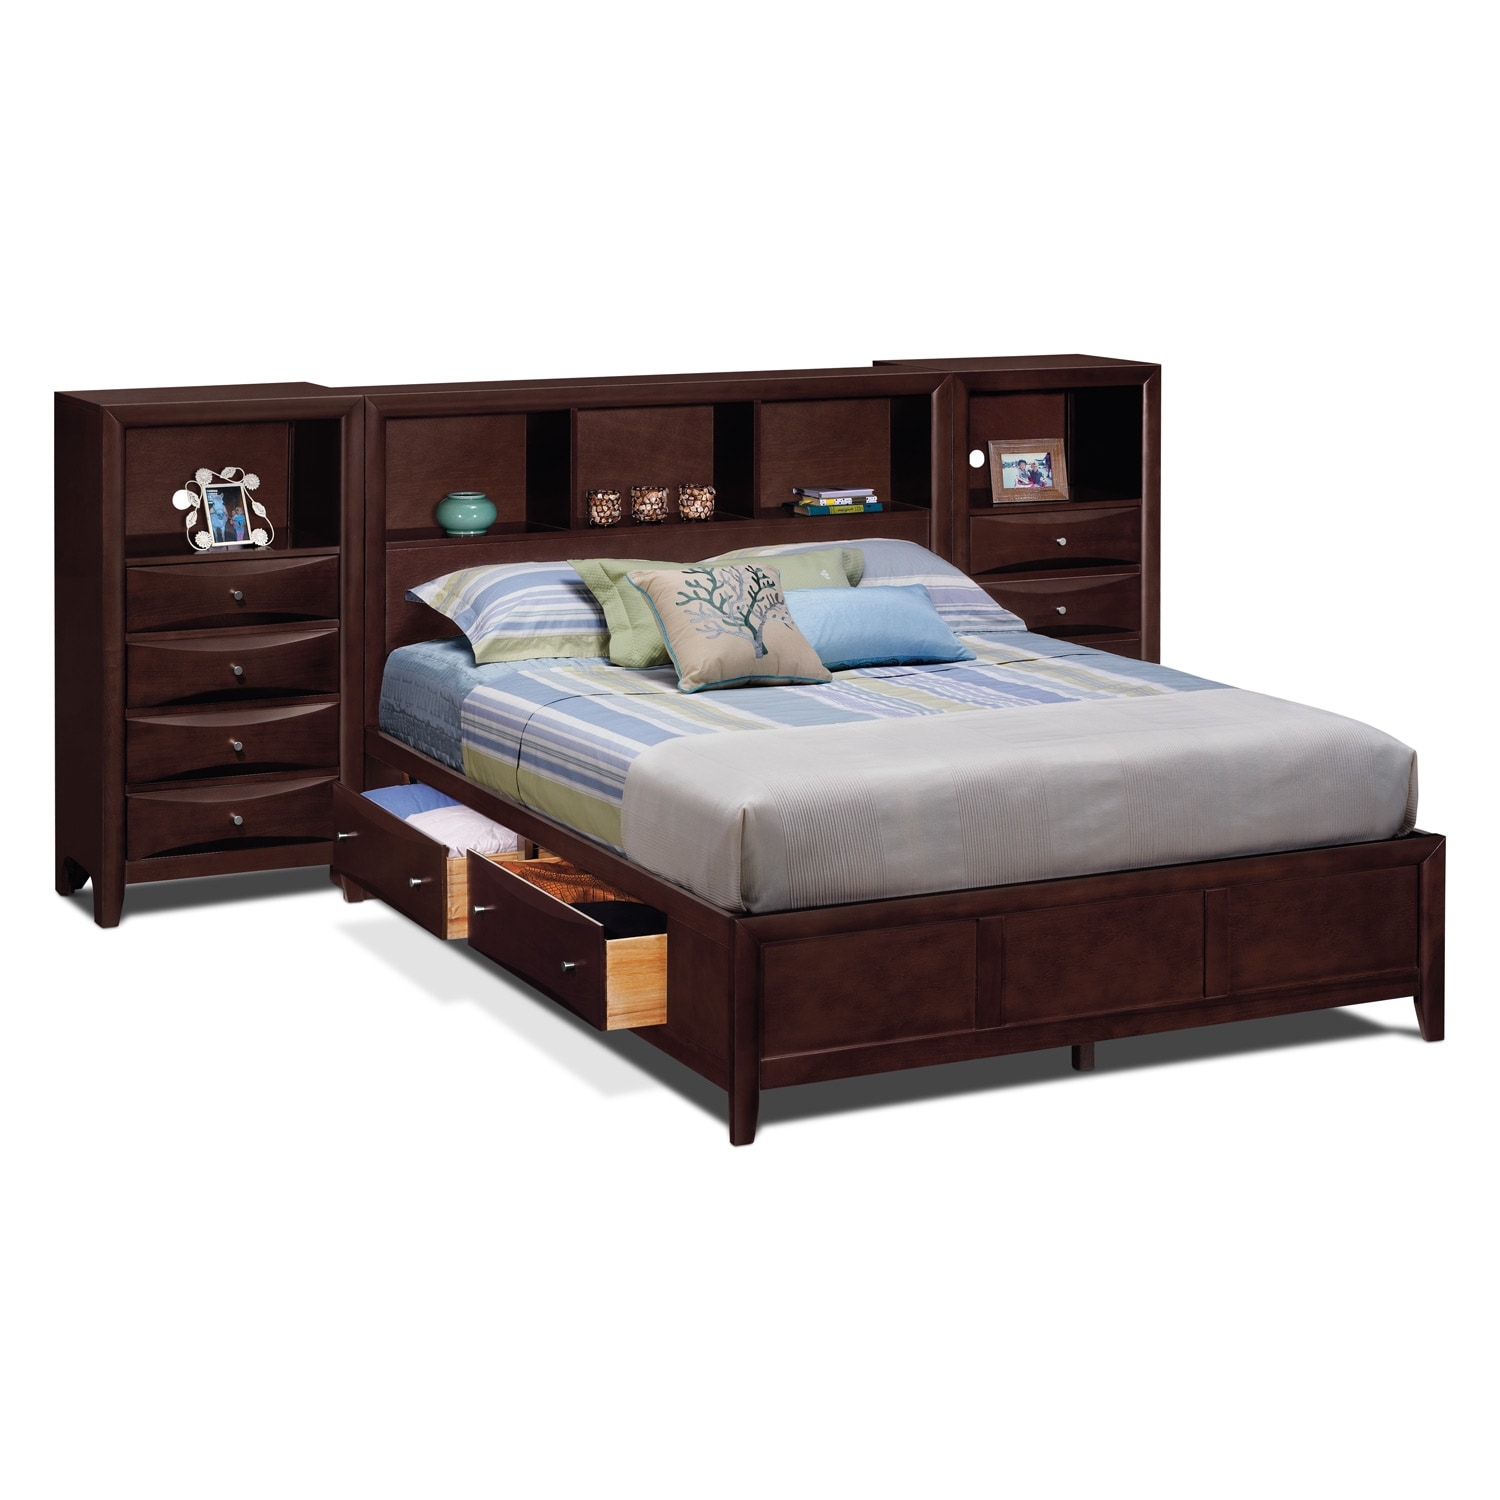 Kensington bedroom queen wall bed with piers for Bedroom furniture queen